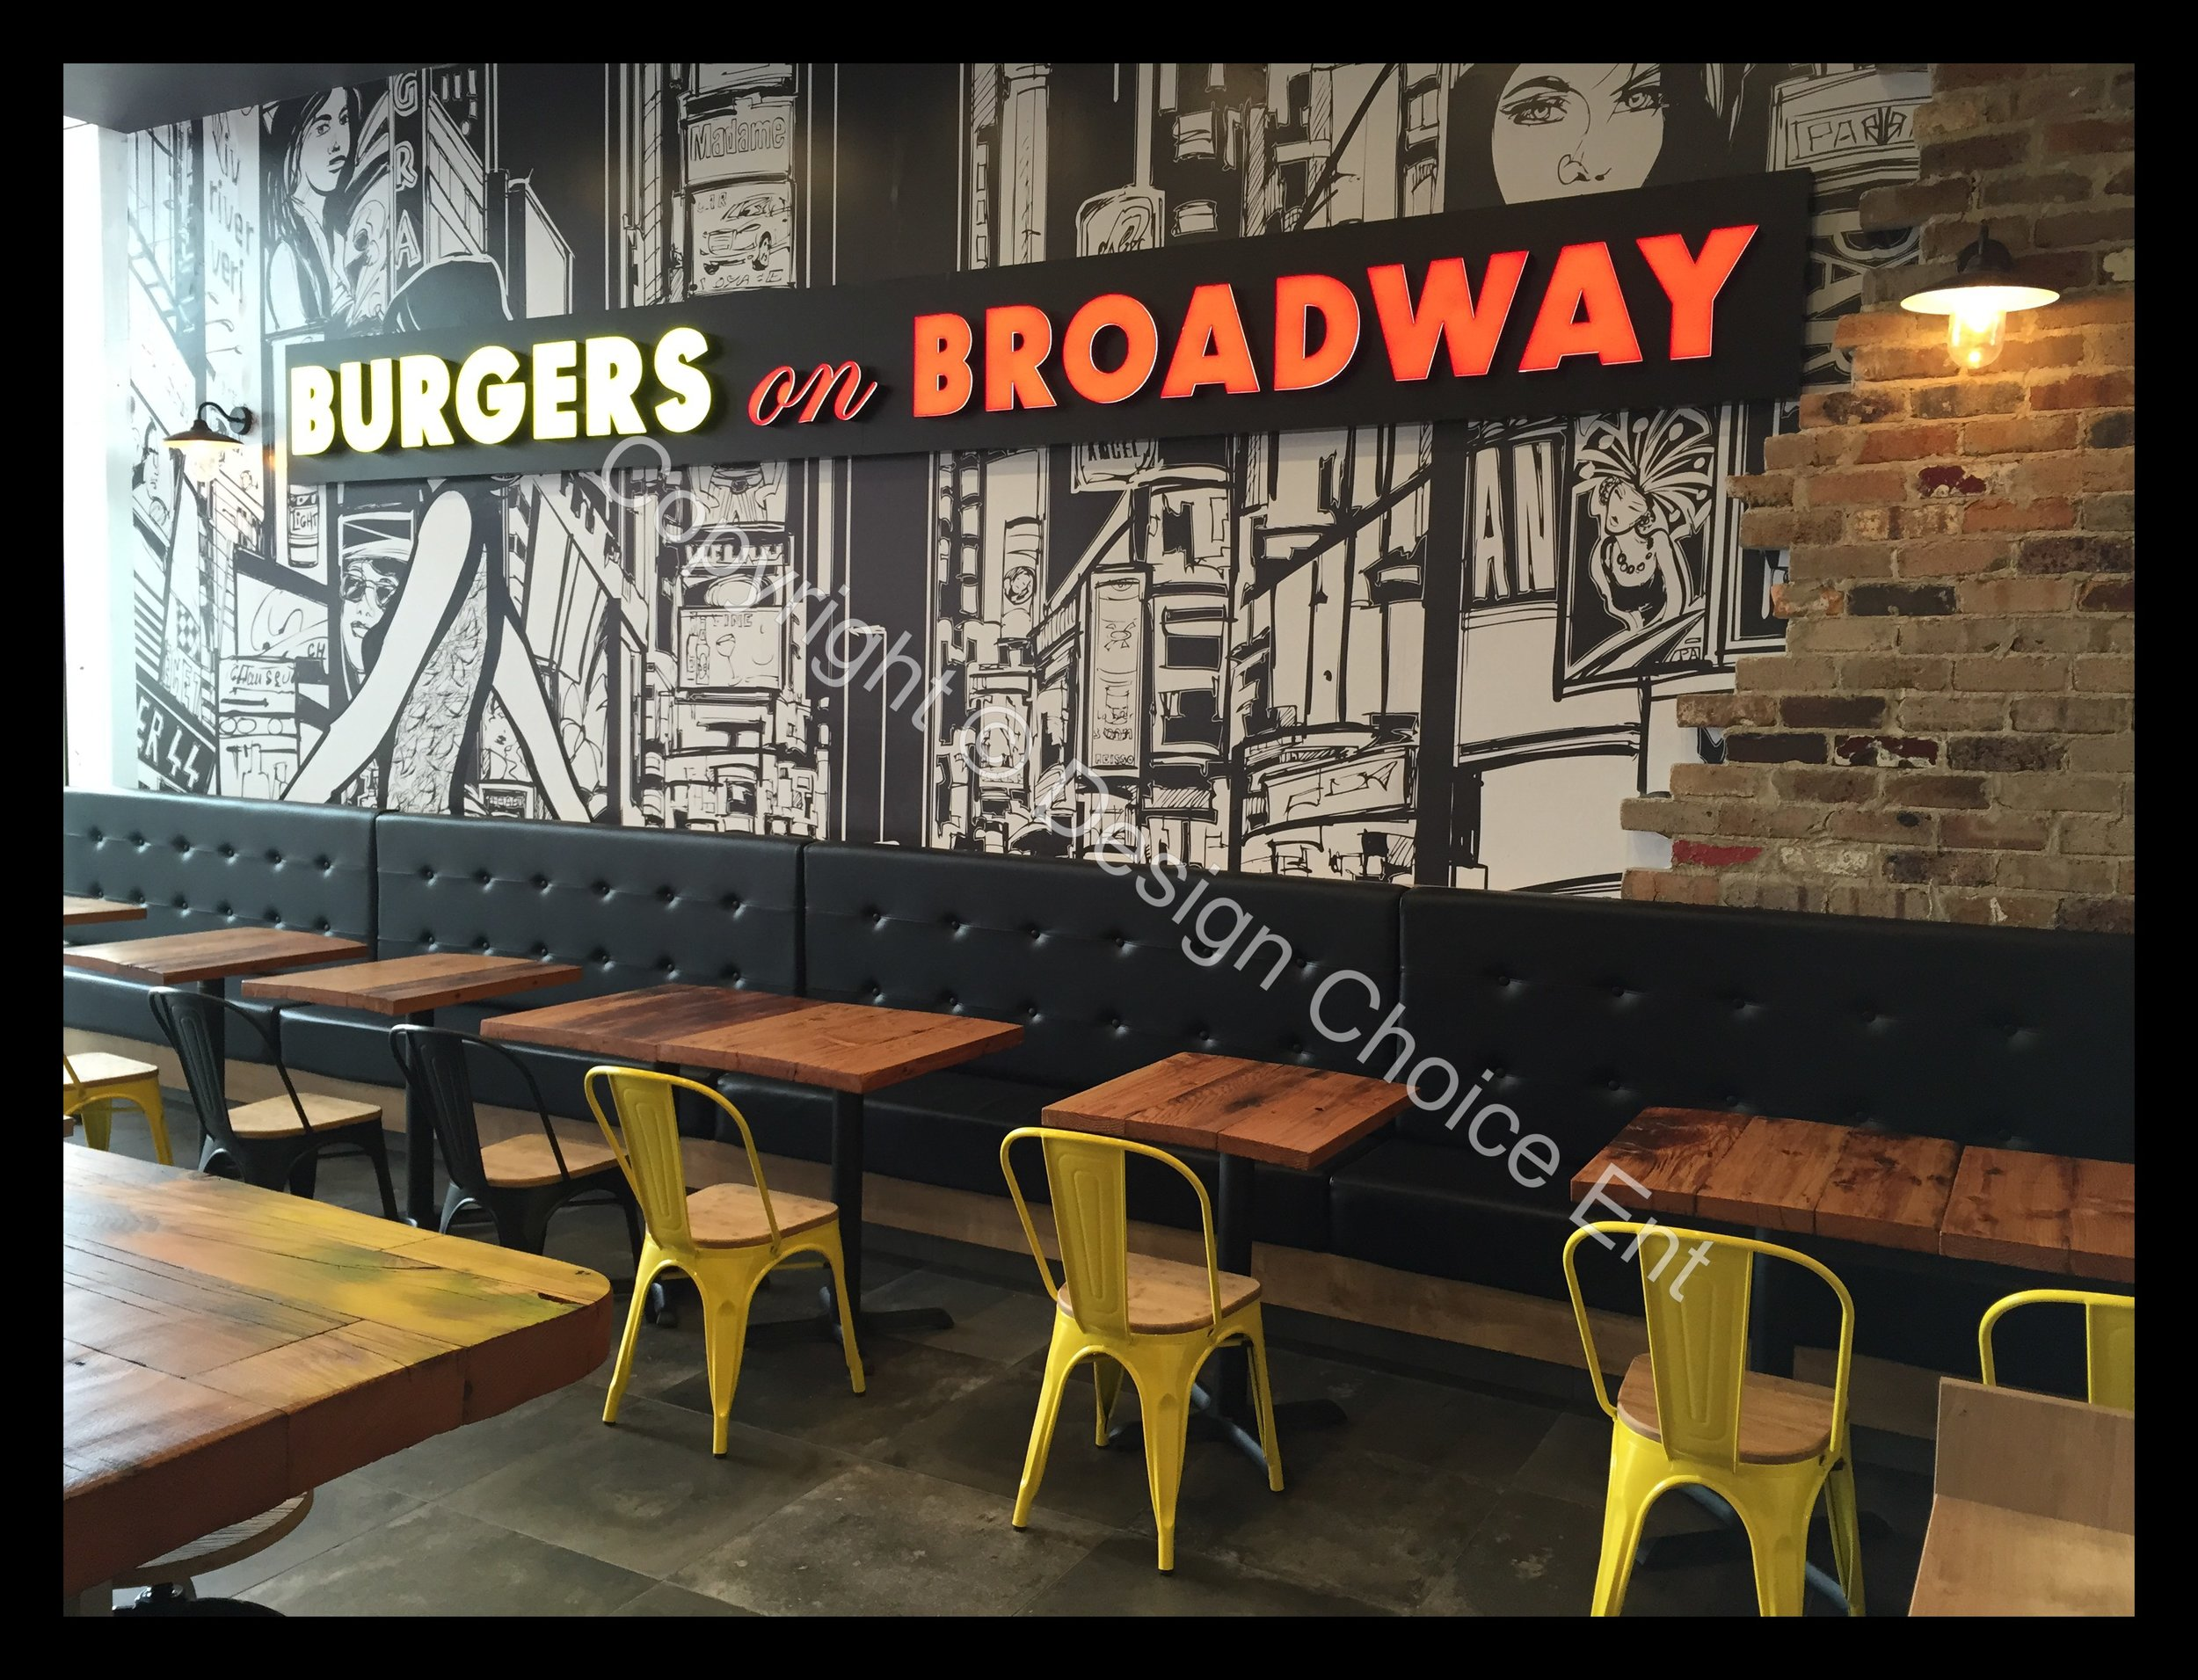 BURGERS ON BROADWAY -